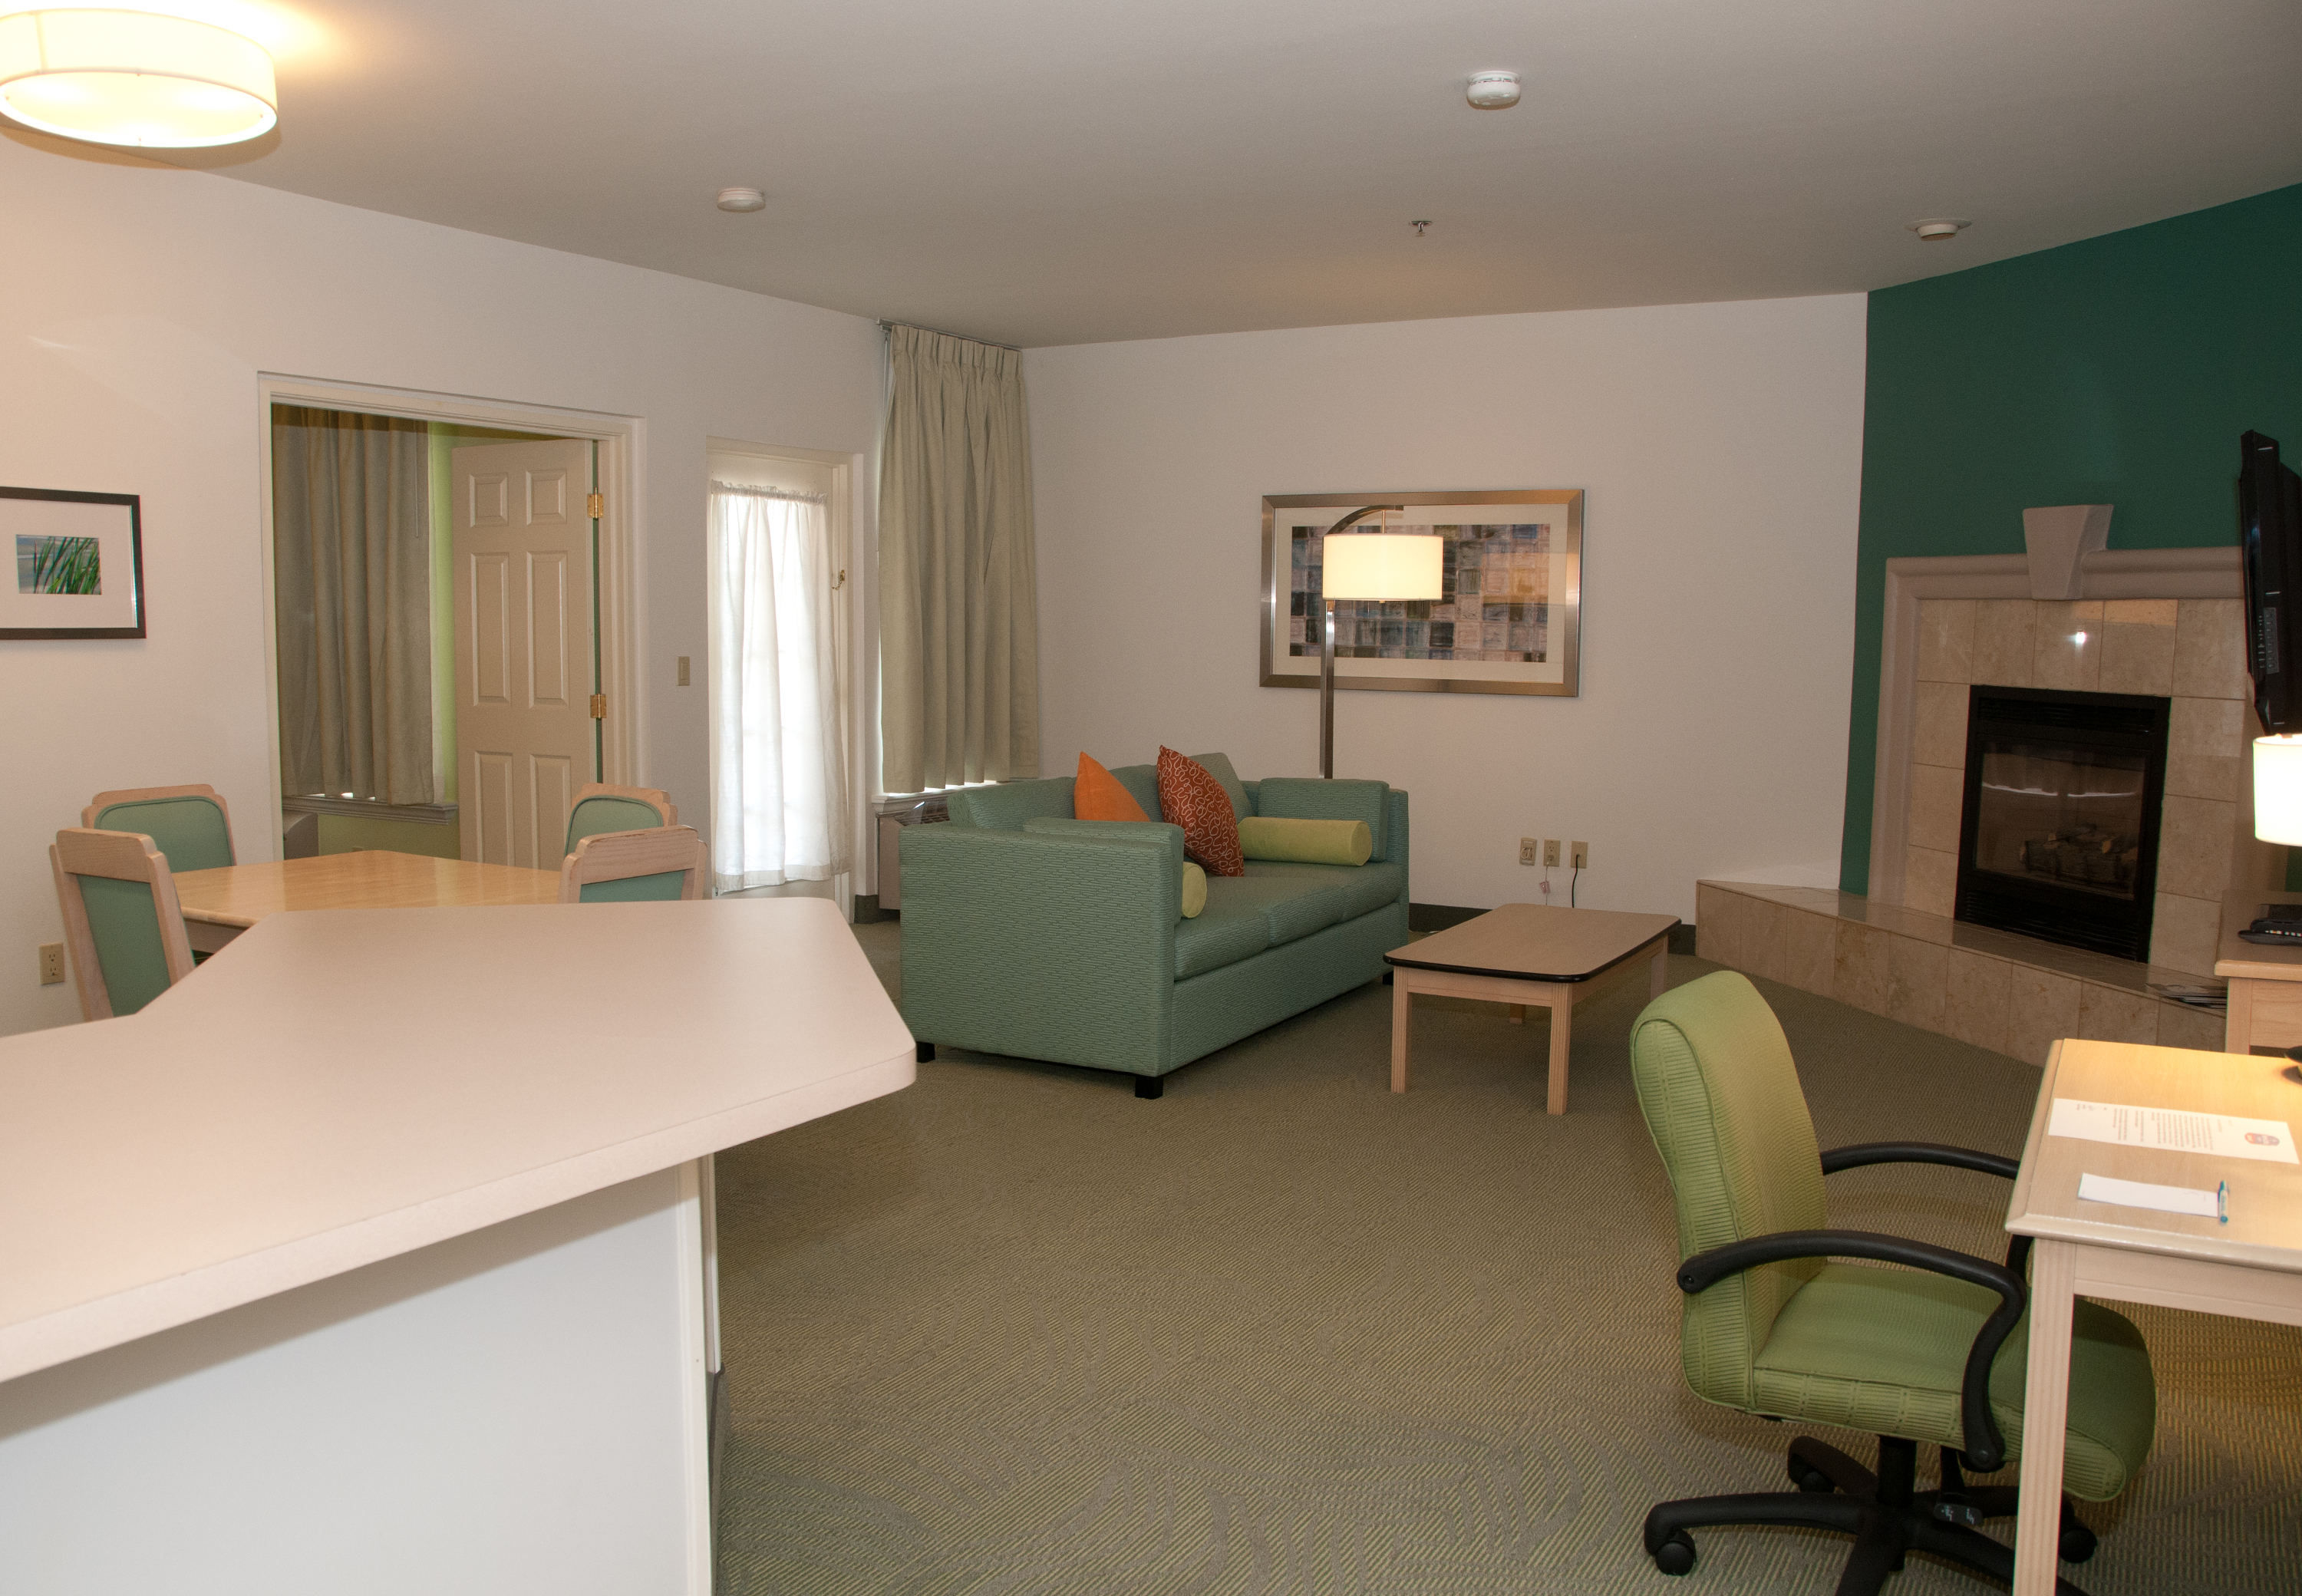 SpringHill Suites by Marriott Las Cruces image 11